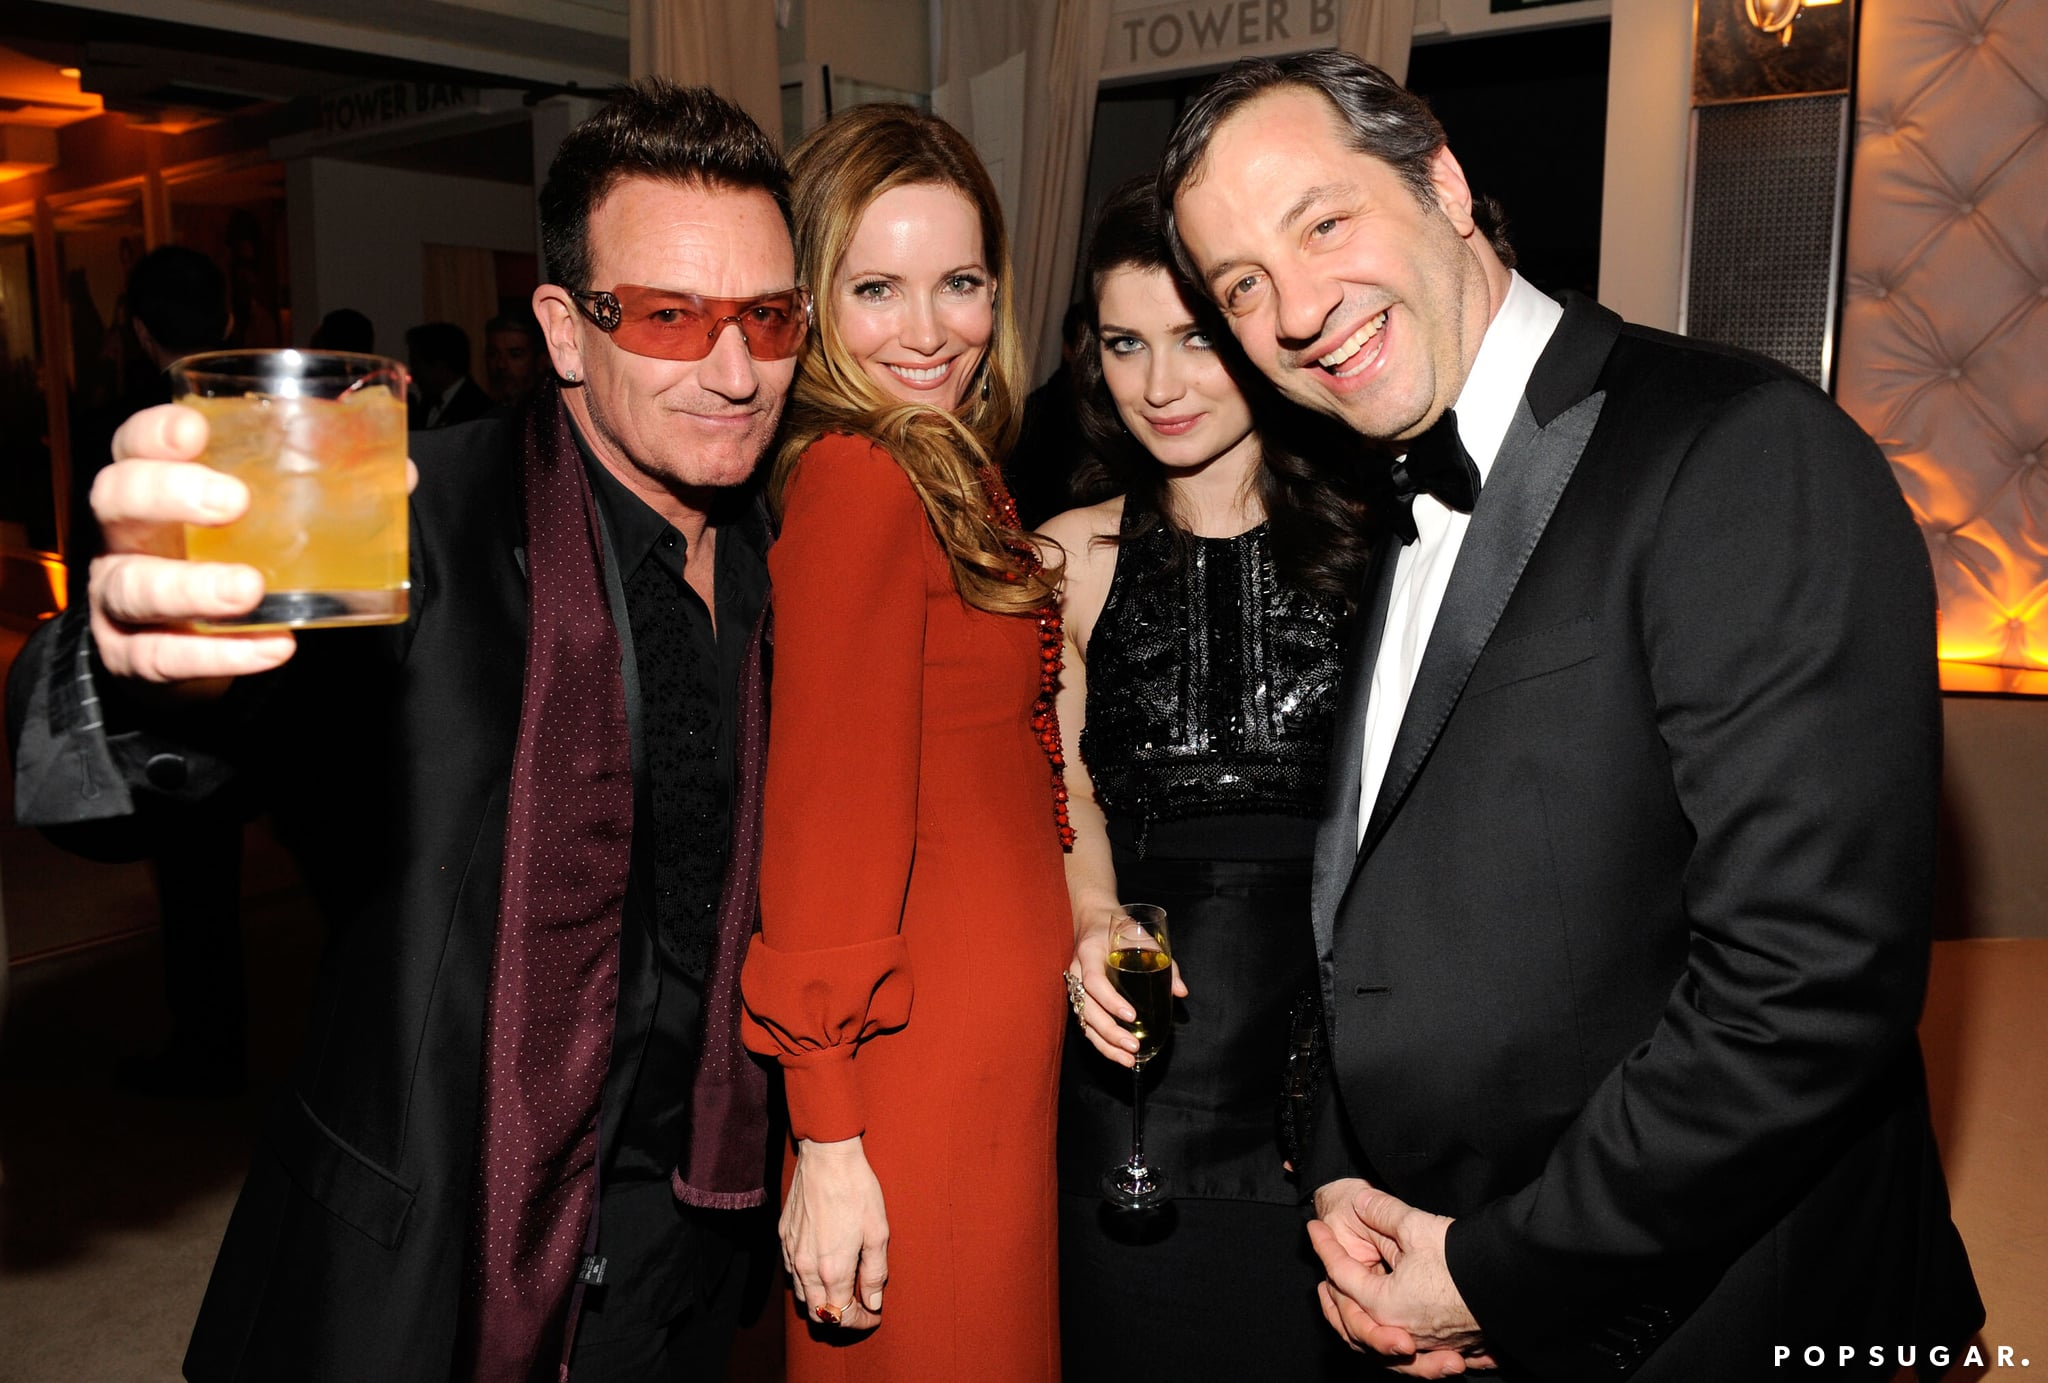 Bono raised his drink and posed with Leslie Mann, Eve Hewson, and Judd Apatow at the Vanity Fair party.